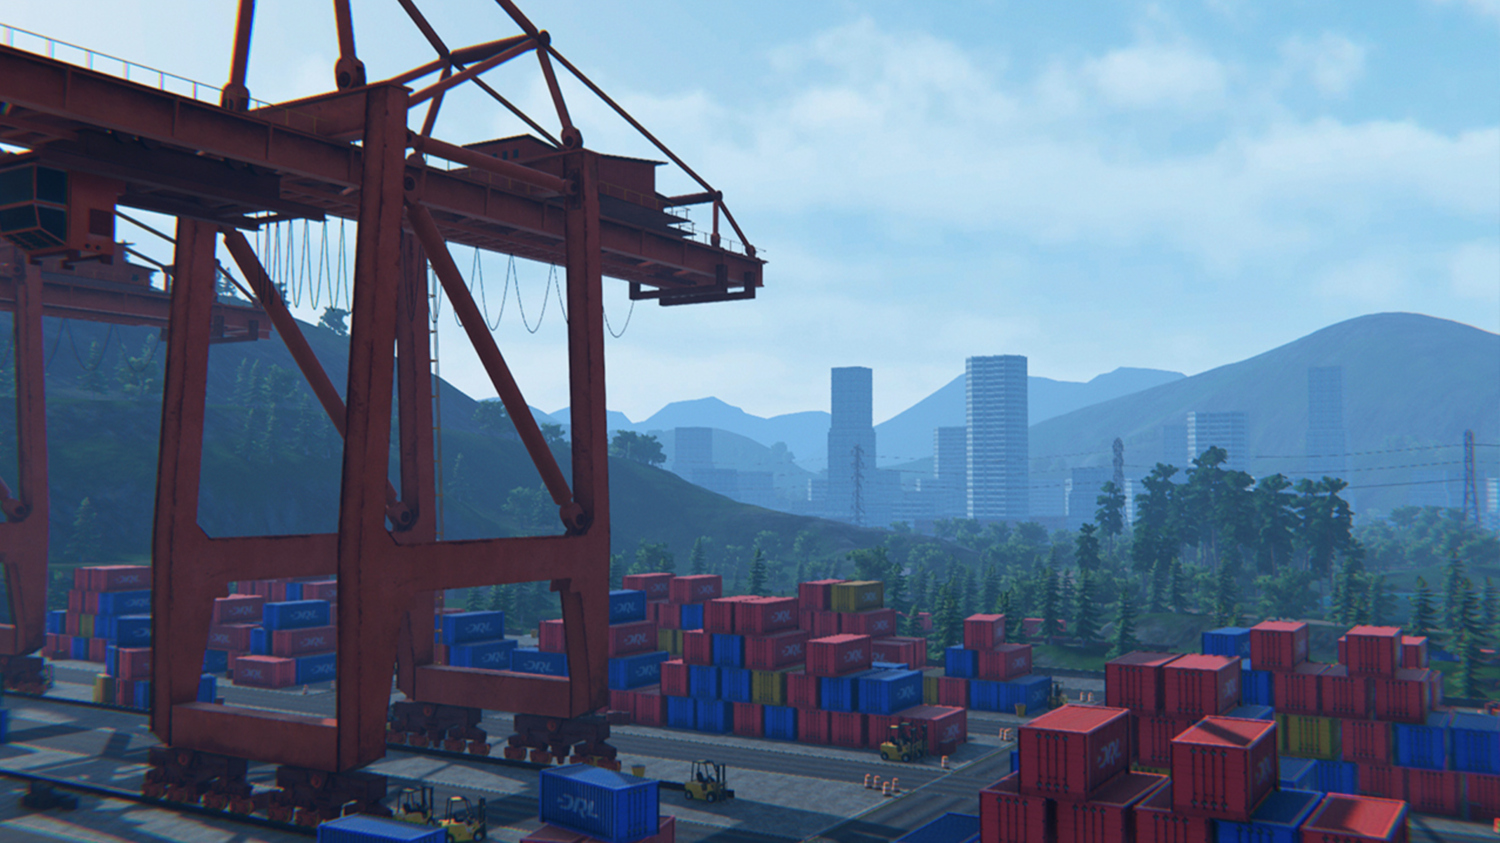 DRL Simulator: Overlooking Shipyard and City at Gates of Hell